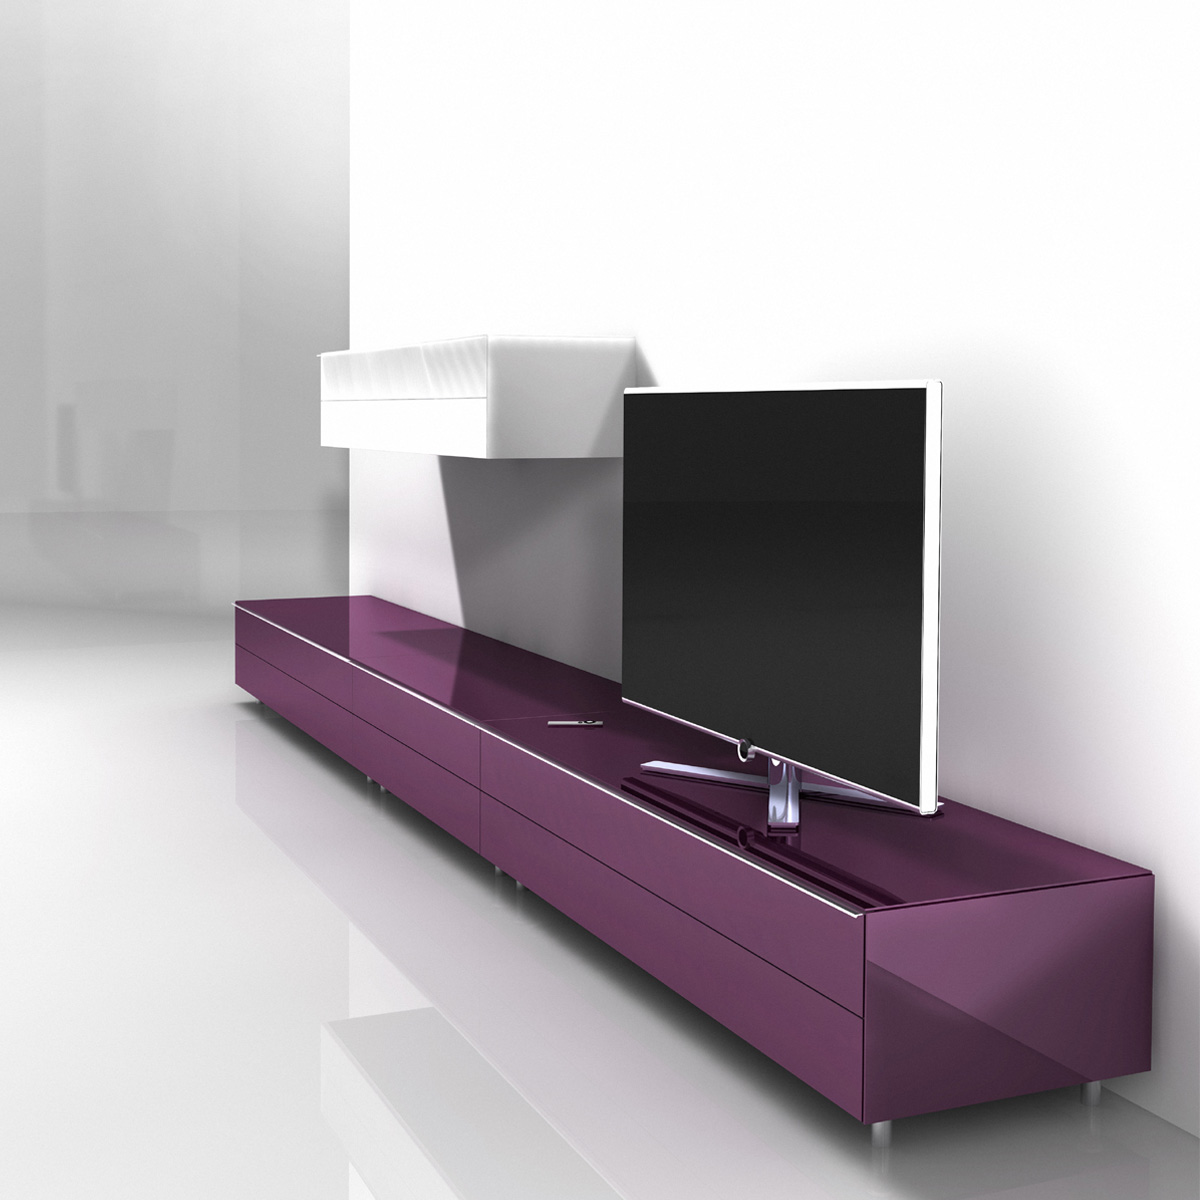 spectral just racks jrl1651s bg smarttv m bel mit soundbar. Black Bedroom Furniture Sets. Home Design Ideas